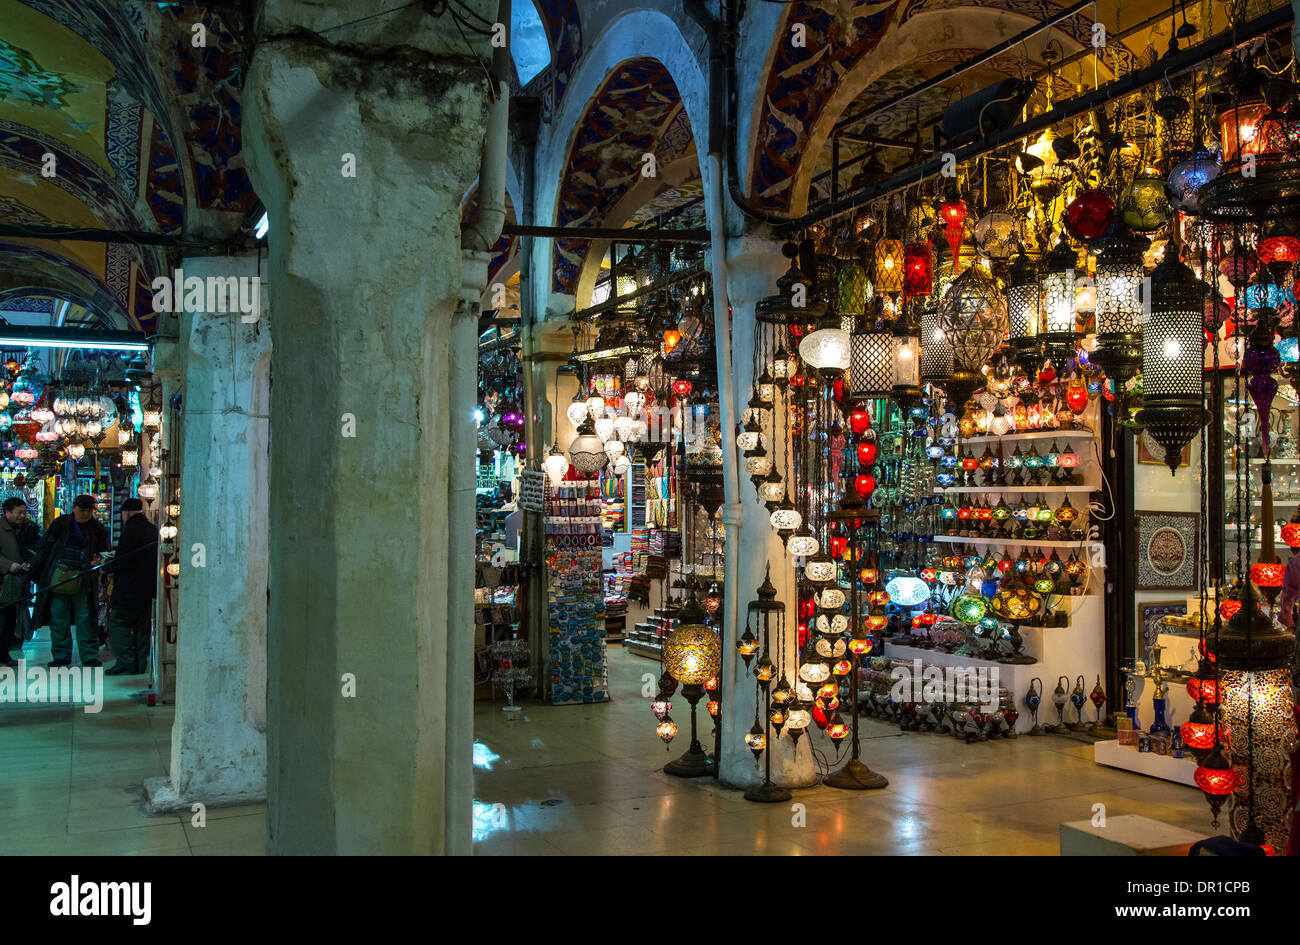 Istanbul, A Colorful Lamp Shop In The Grand Bazaar   Stock Image